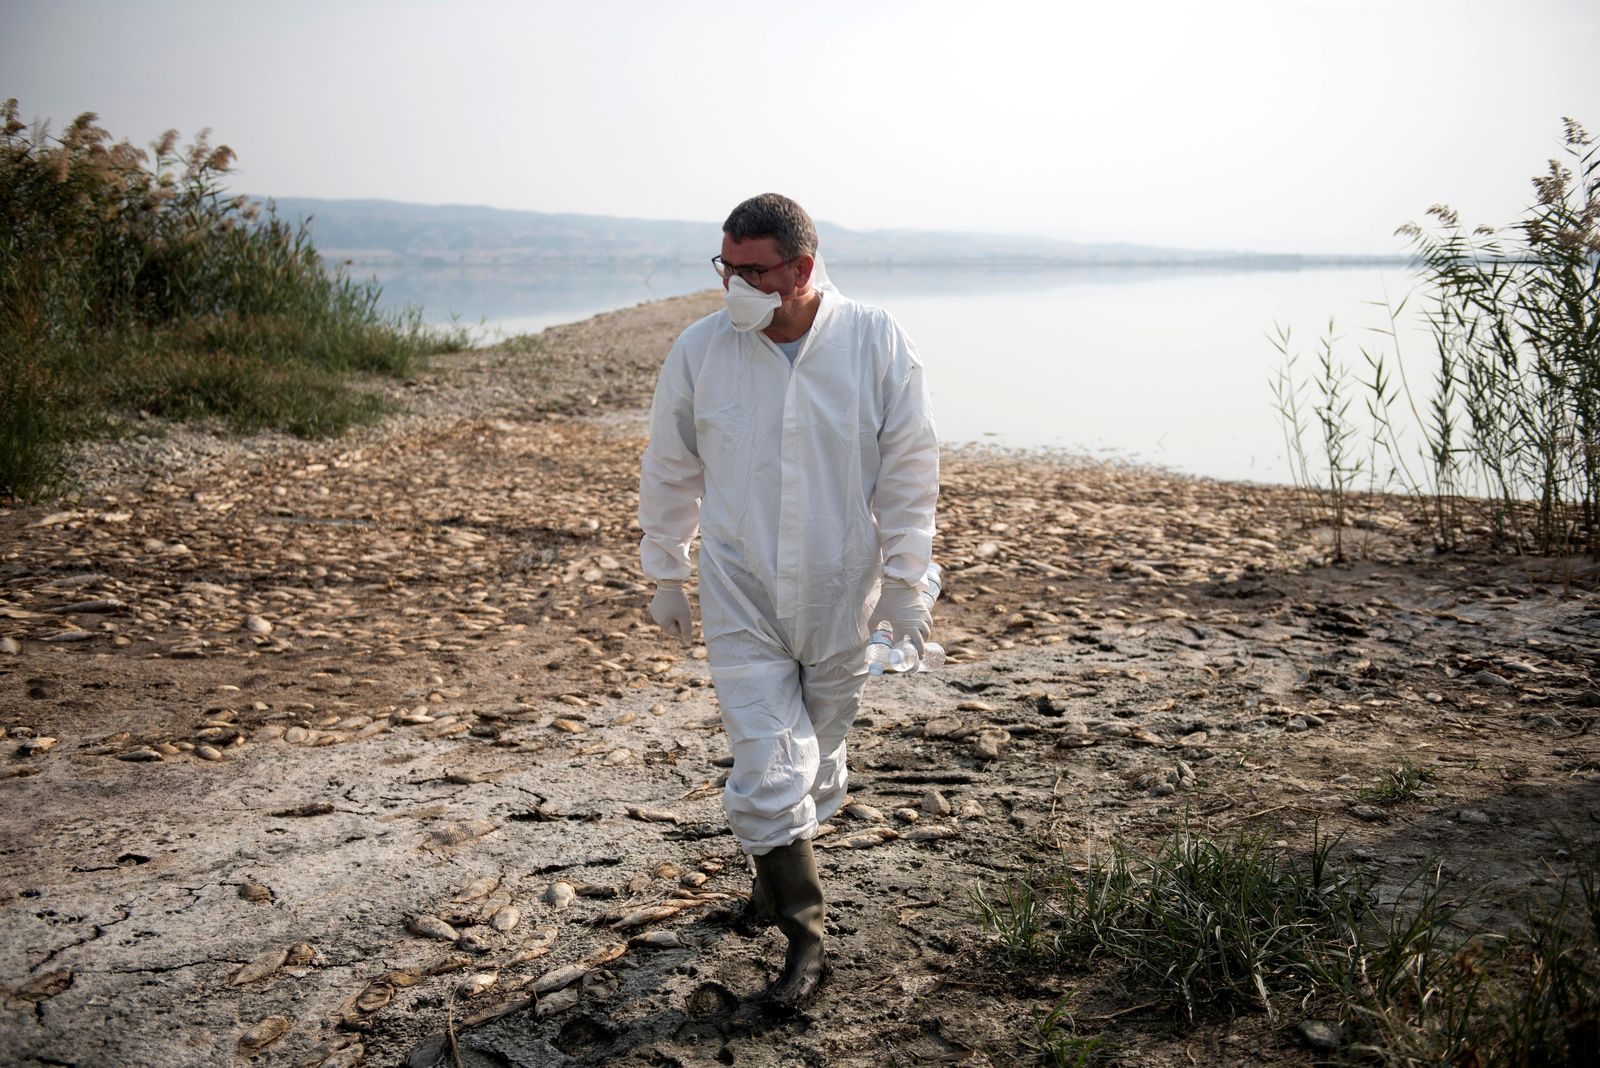 An expert inspects the shores of Koroneia Lake in northern Greece, on Thursday, Sept. 19, 2019. Thousands of freshwater fish have been found dead at Lake Koroneia, outside the northern Greek city of Thessaloiniki, after the water level fell sharply due to a drought in the region. (AP Photo/Giannis Papanikos)